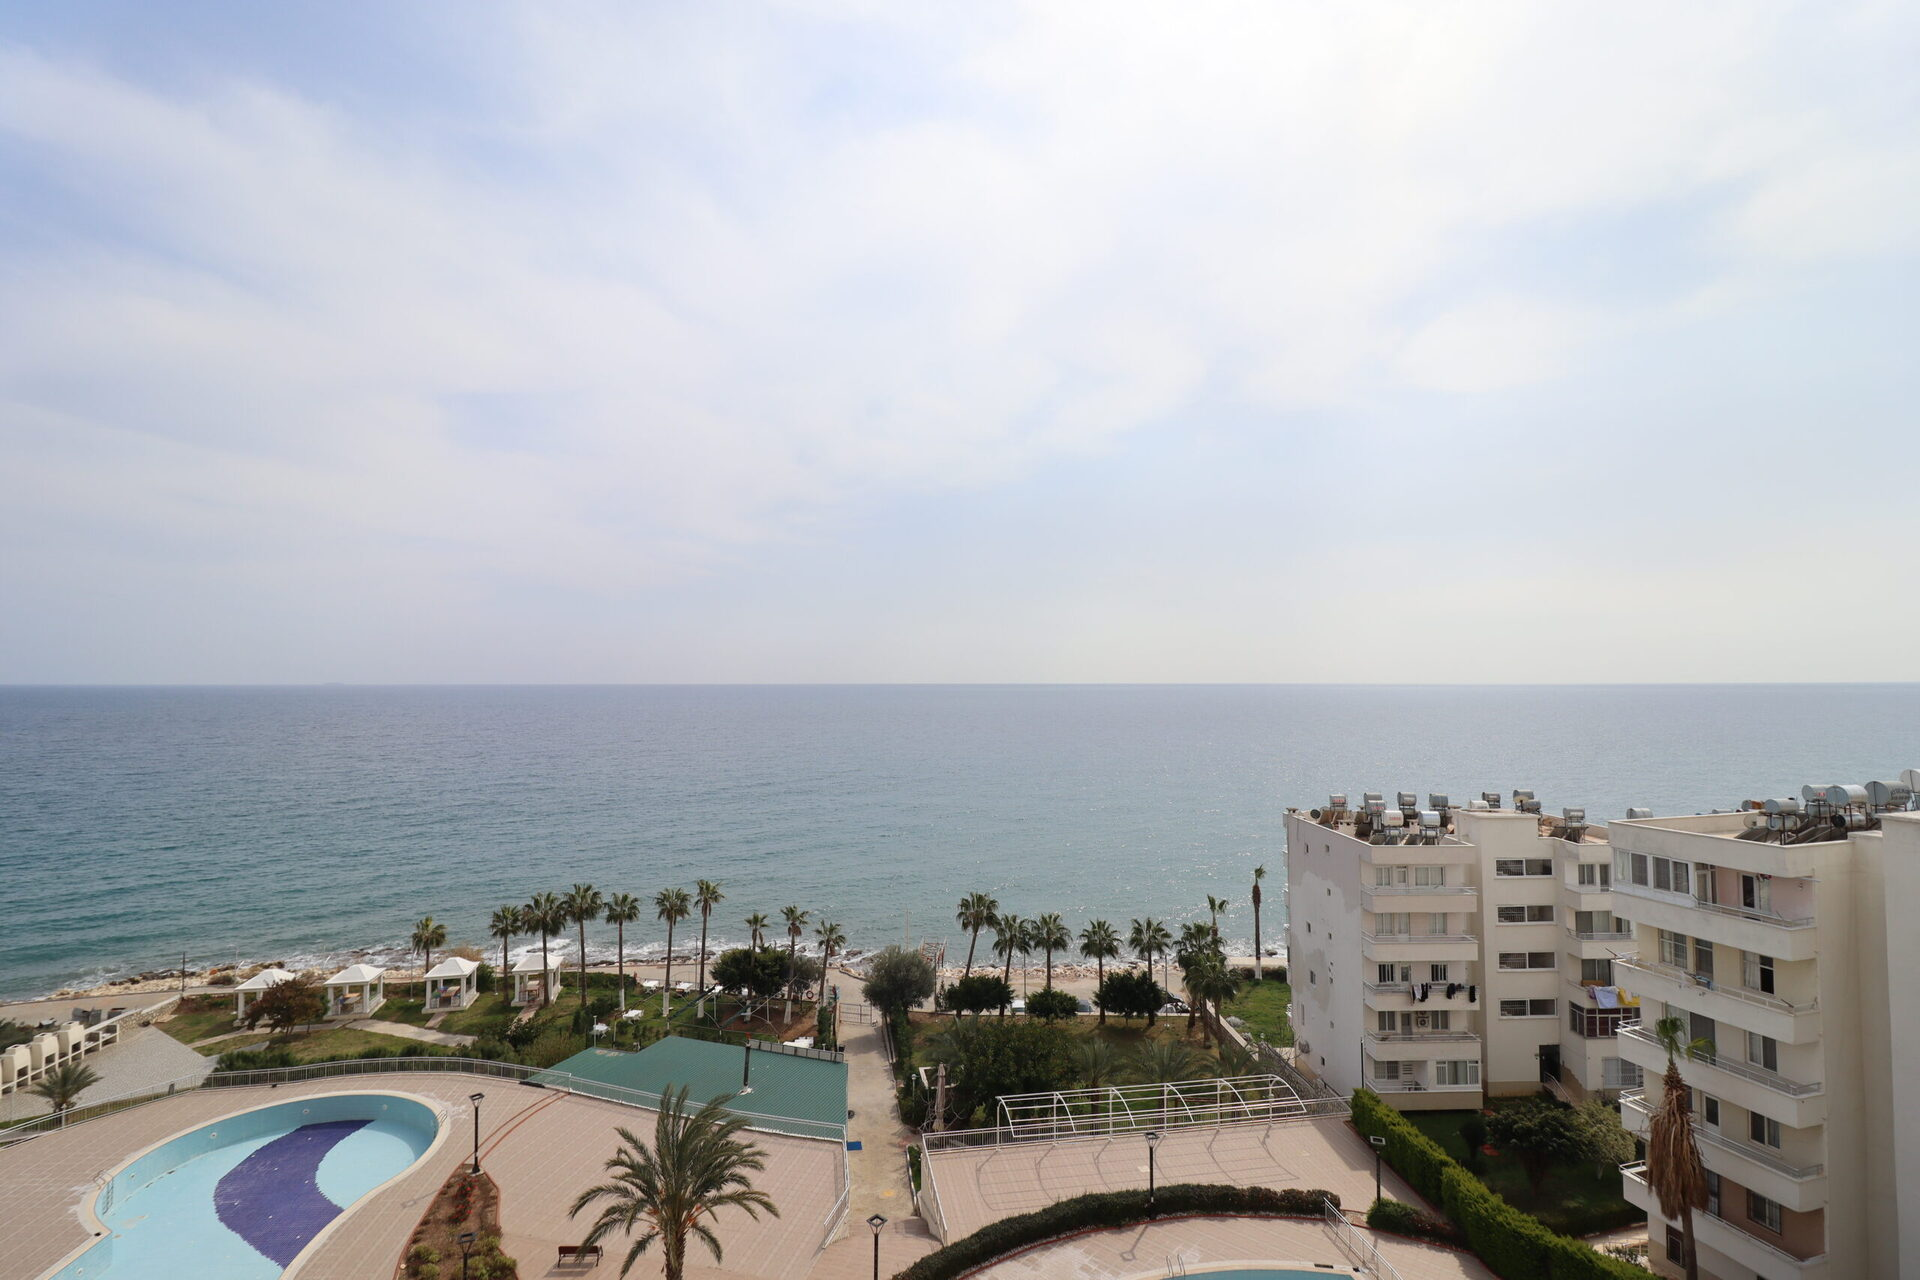 Mersin Erdemli Ayas Sunrise Queenaba 4 Compound Furnished Flat For Rent